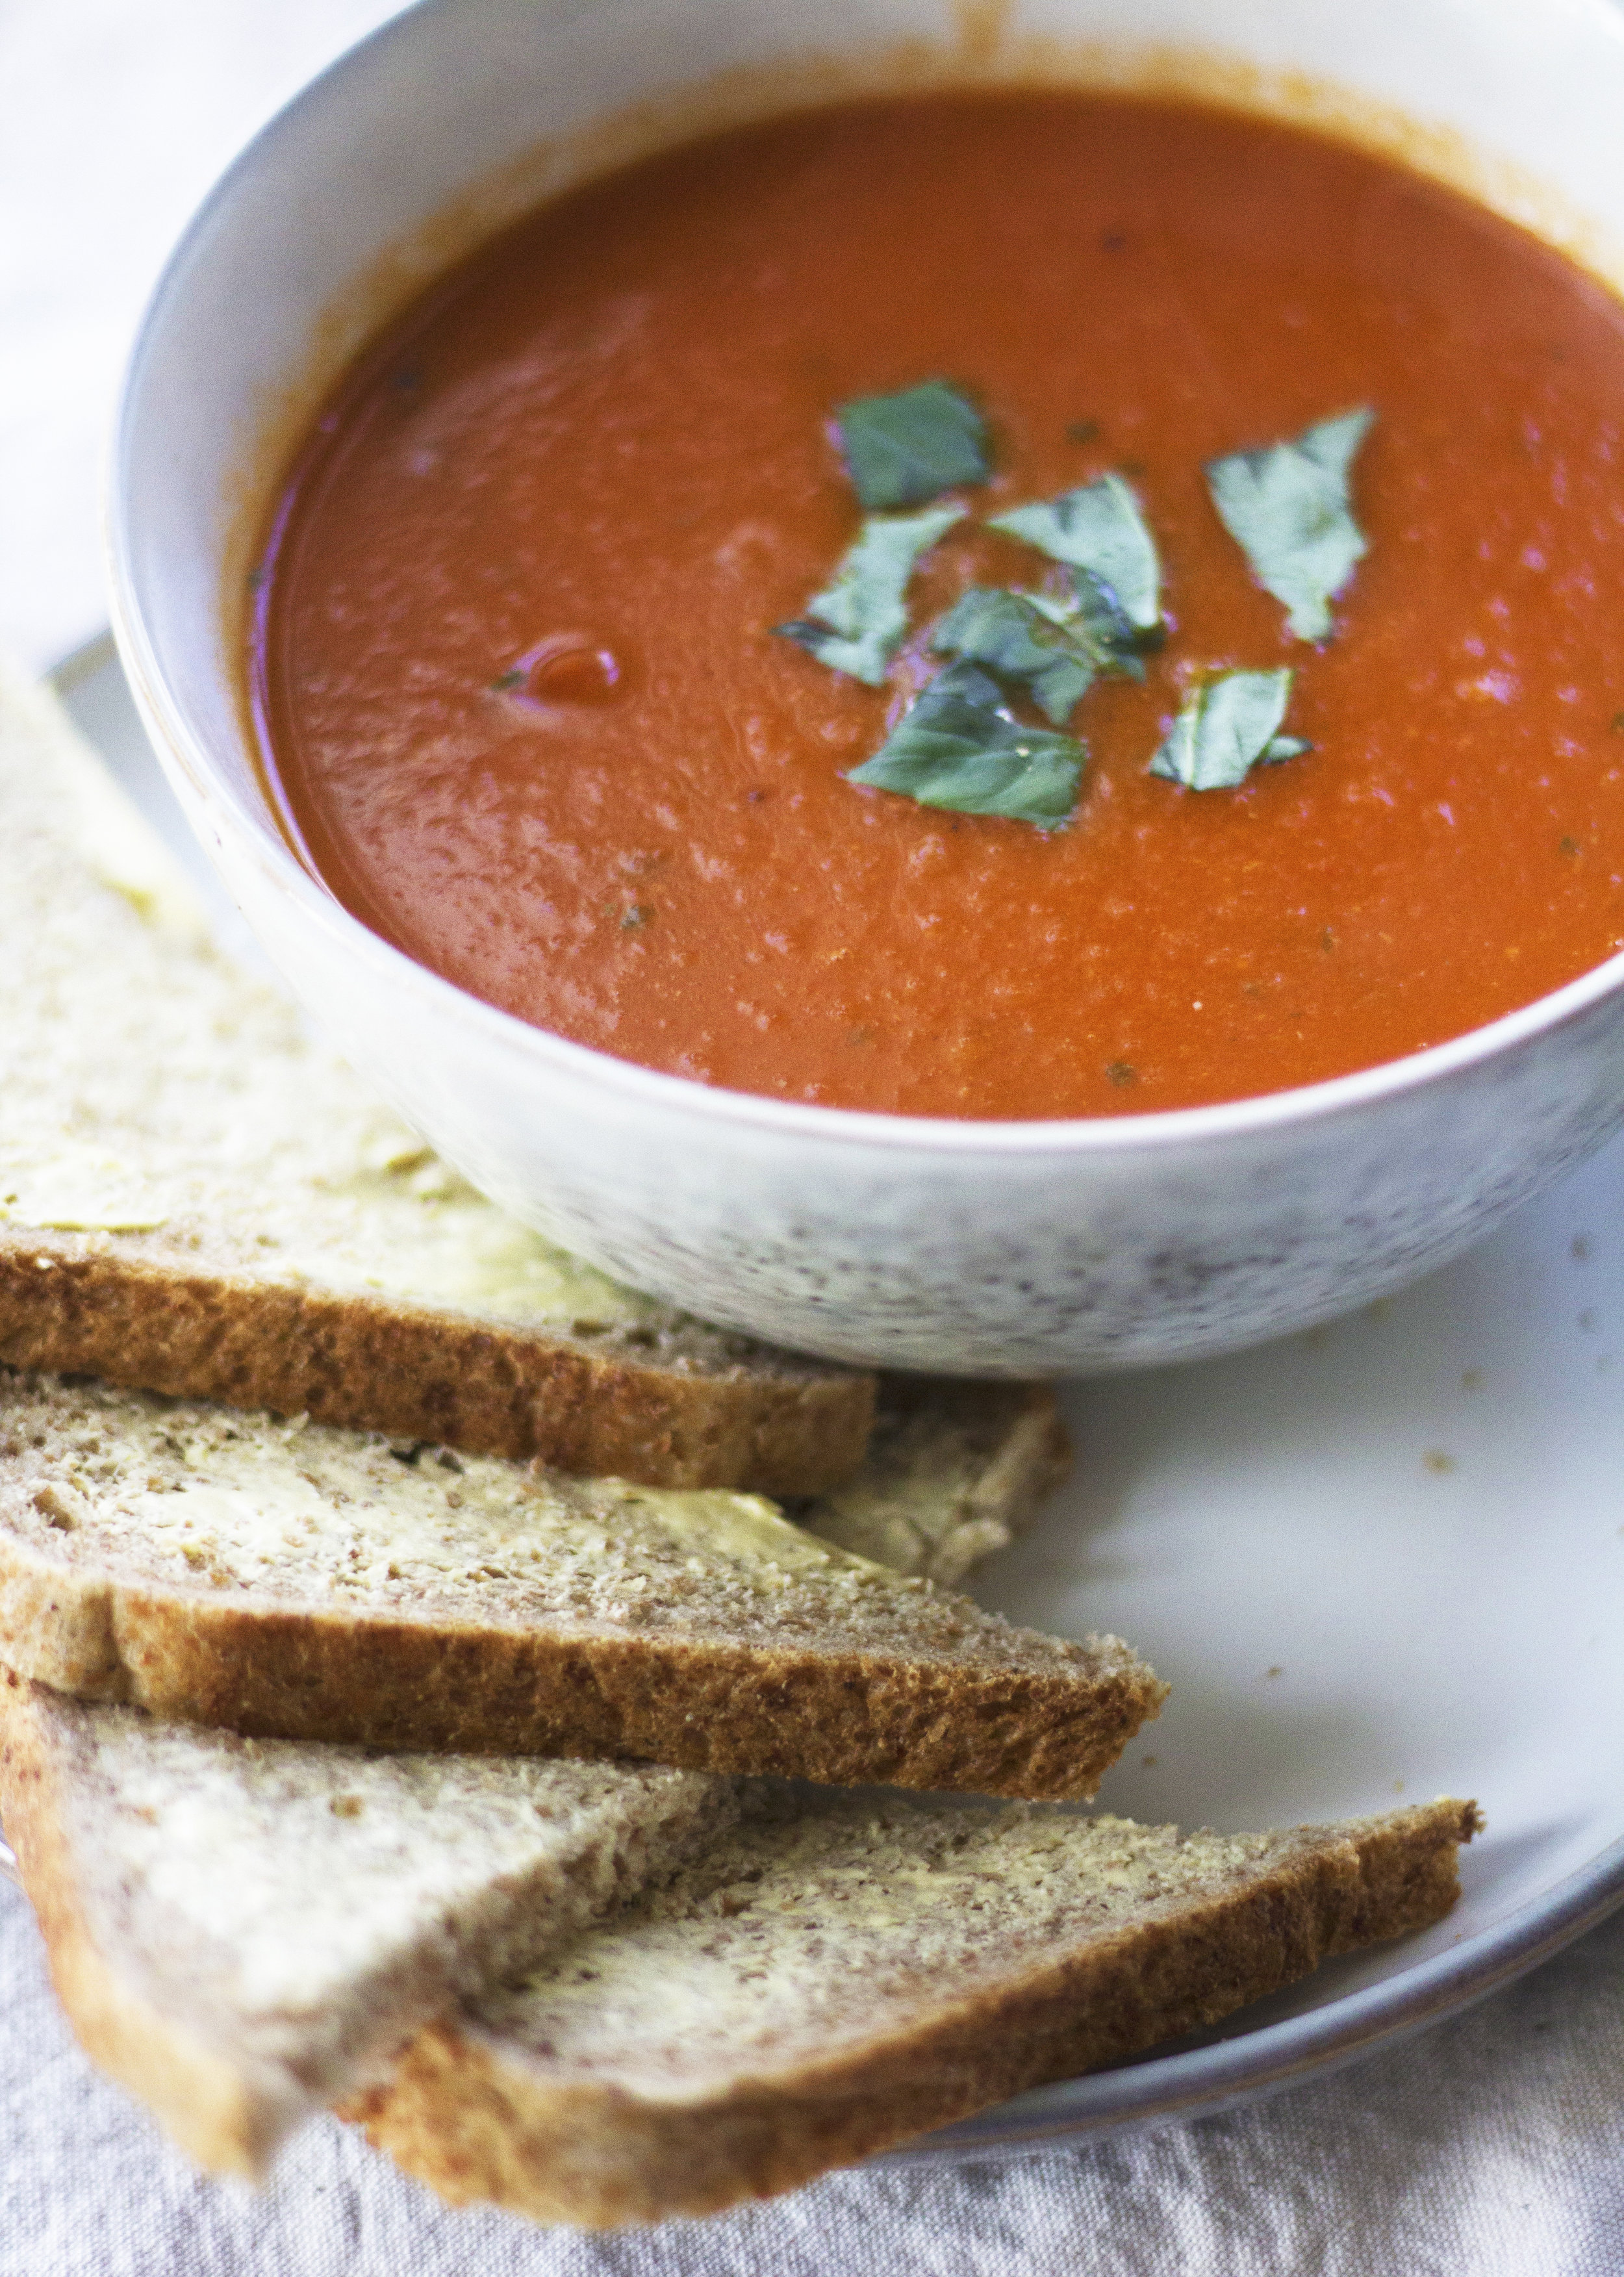 This hearty tomato soup will hit all the right spots on a sick or rainy day. - prep time5 mins  total time20 mins  serves 4